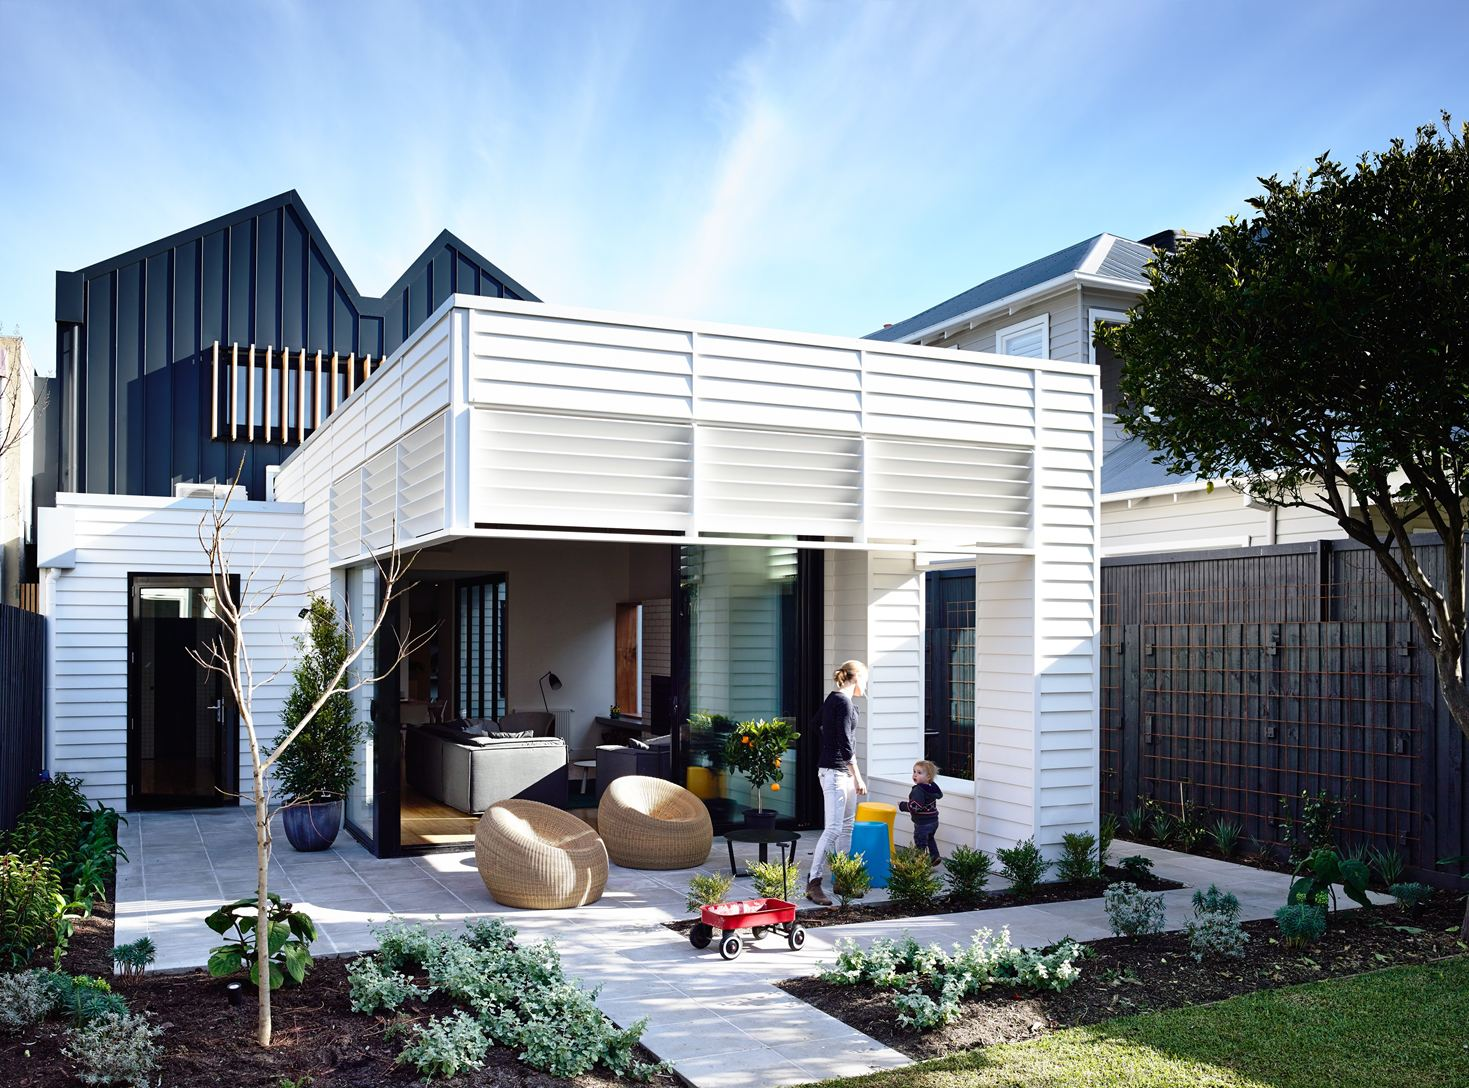 Sandringham Residence in Auckland, New Zealand by Techne Architecture + Interior Design & Doherty Design Studio